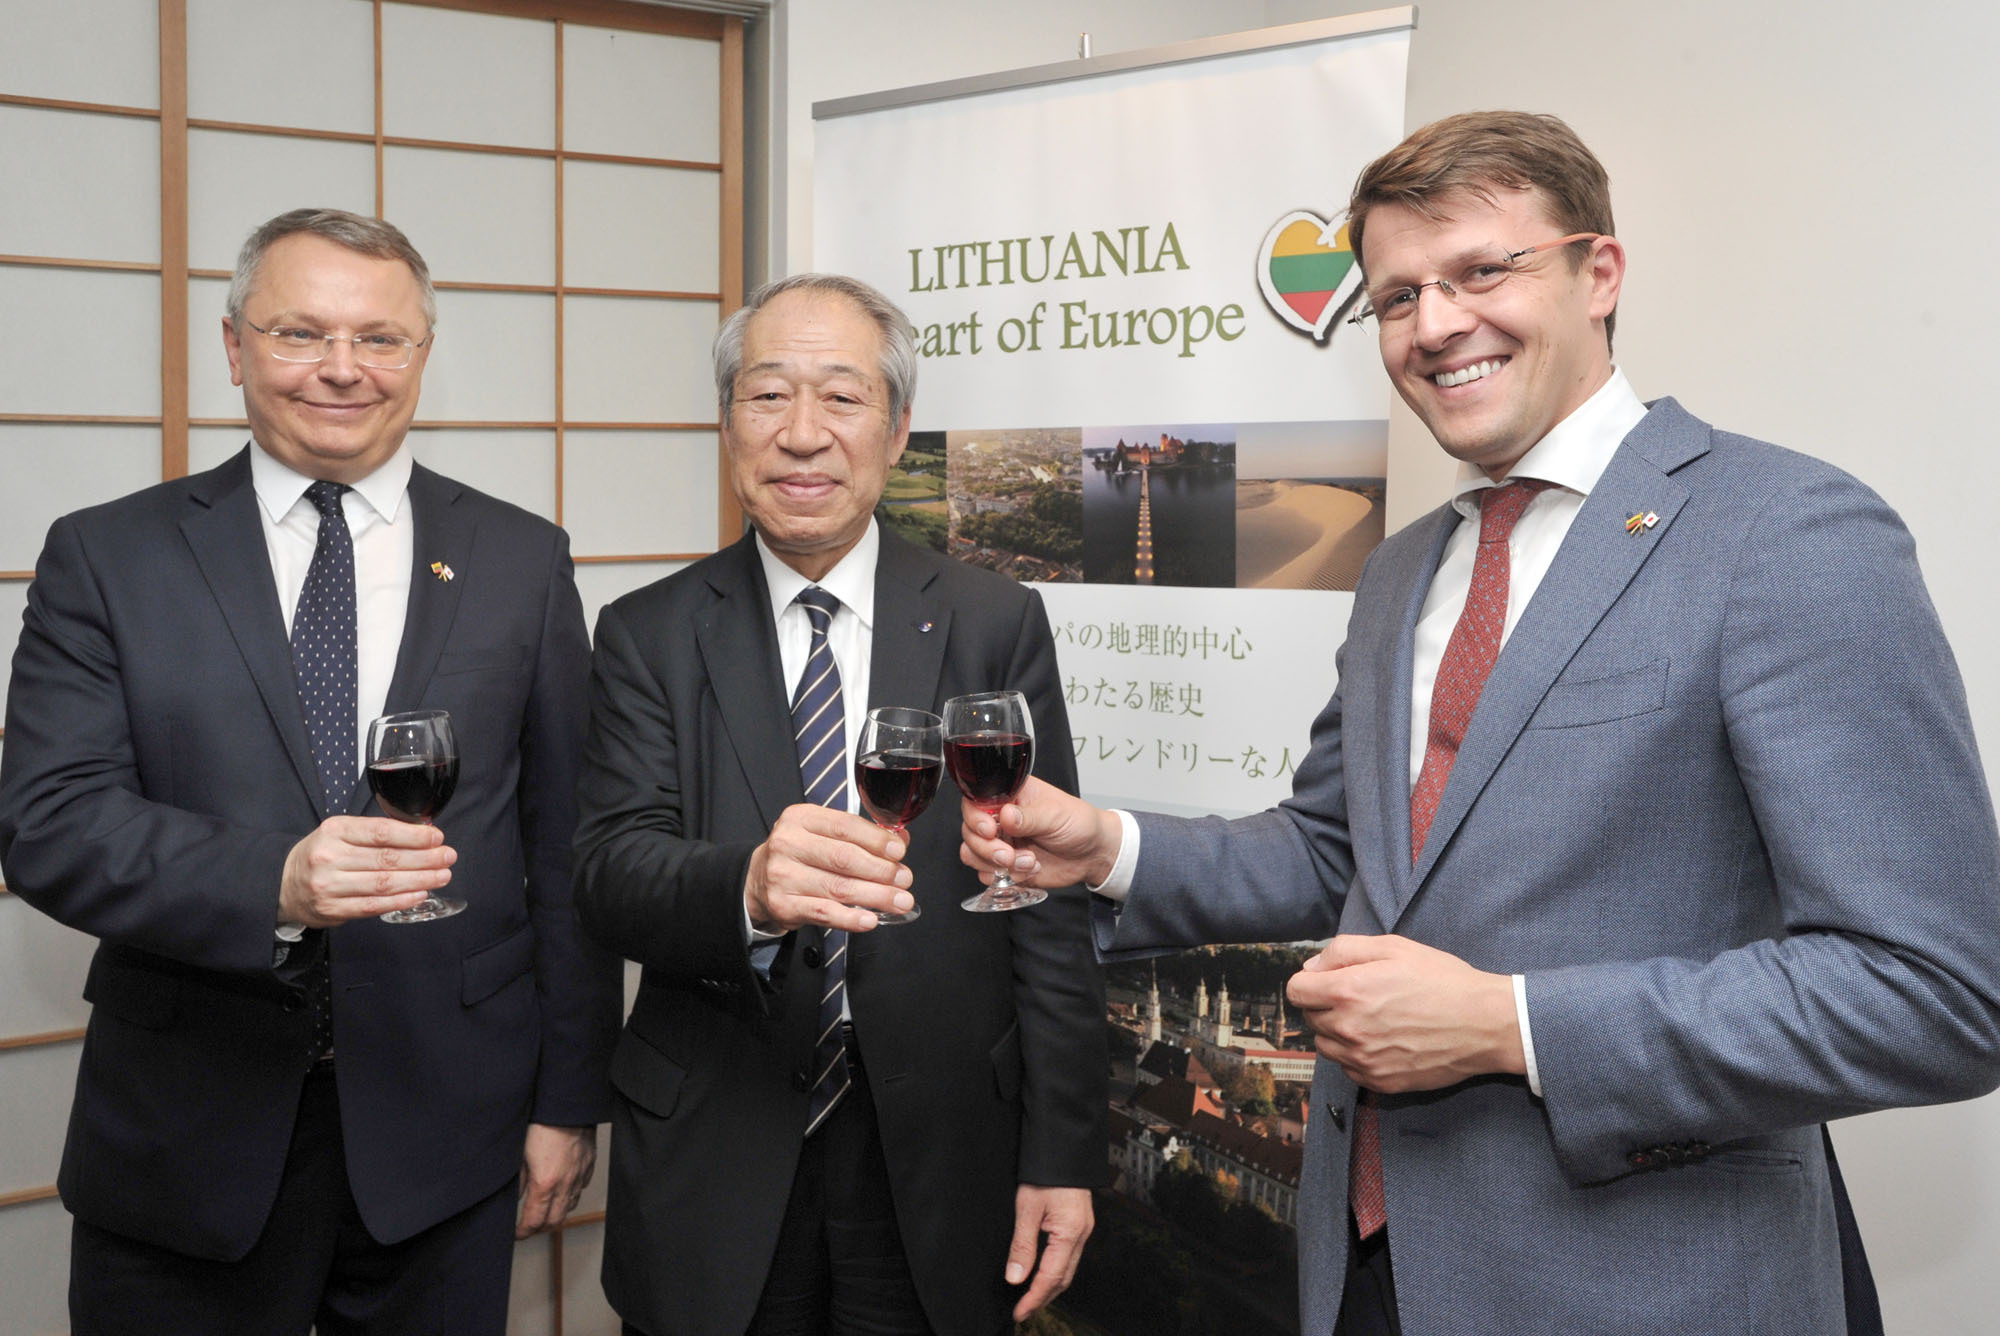 Vice Minister of the Economy of the Republic of Lithuania Marius Skarupskas (right), shares a toast with Lithuanian Ambassador to Japan Egidijus Meilunas (left) and Tatsumi Yamazaki (center), chairman of the Japan Bioindustry Association Steering Committee, at a welcome reception at the Lithuanian embassy on May 11. | YOSHIAKI MIURA